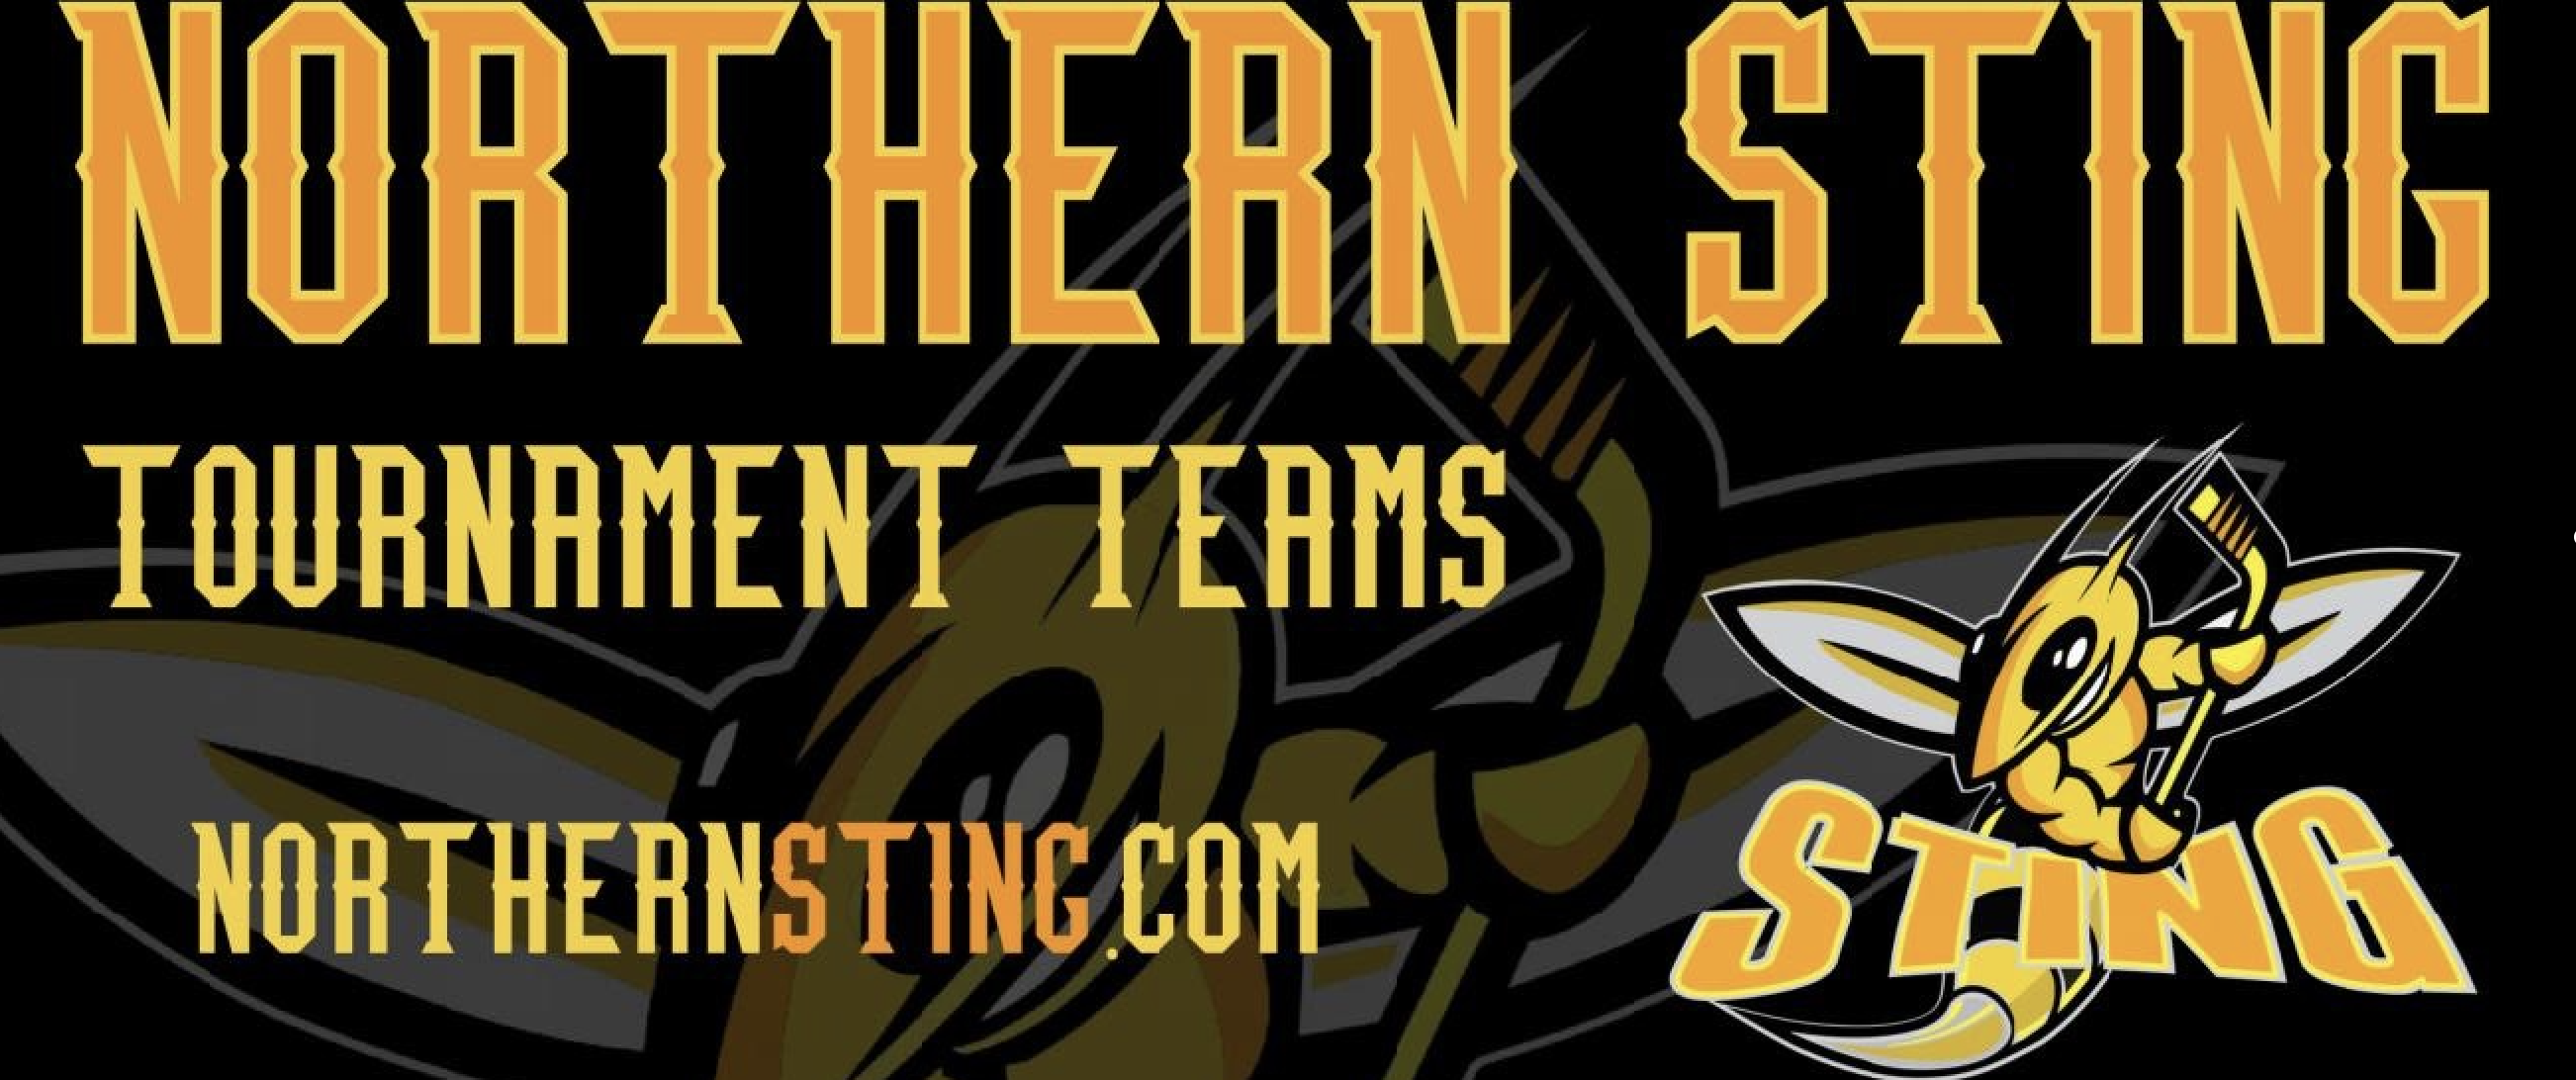 Sting banner cropped